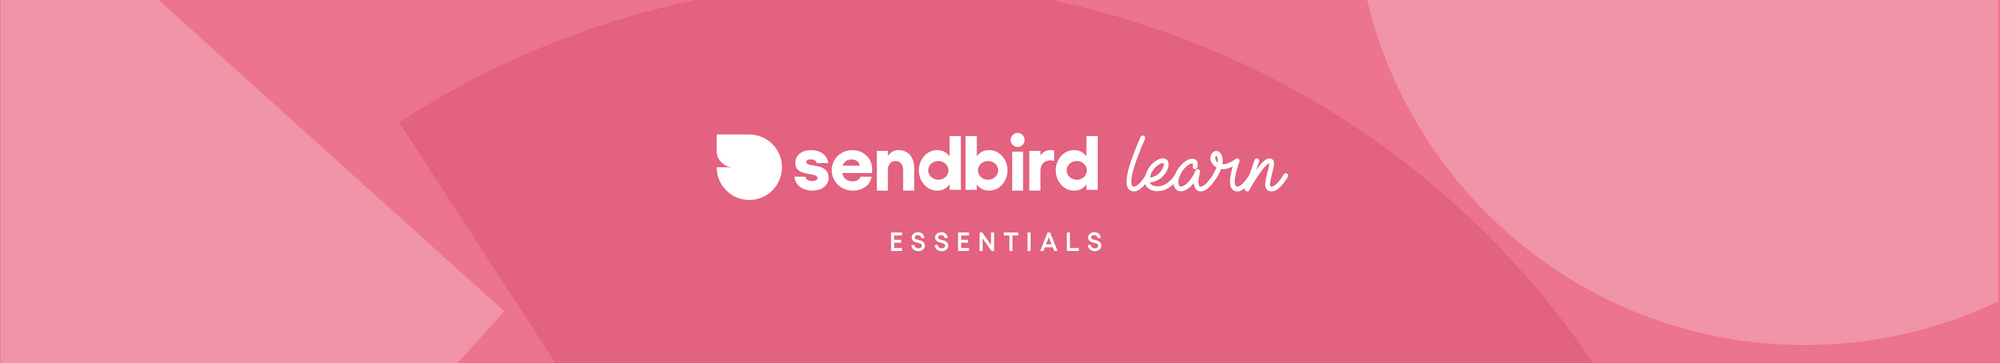 sendbird_learn_essentials_copy_8.png